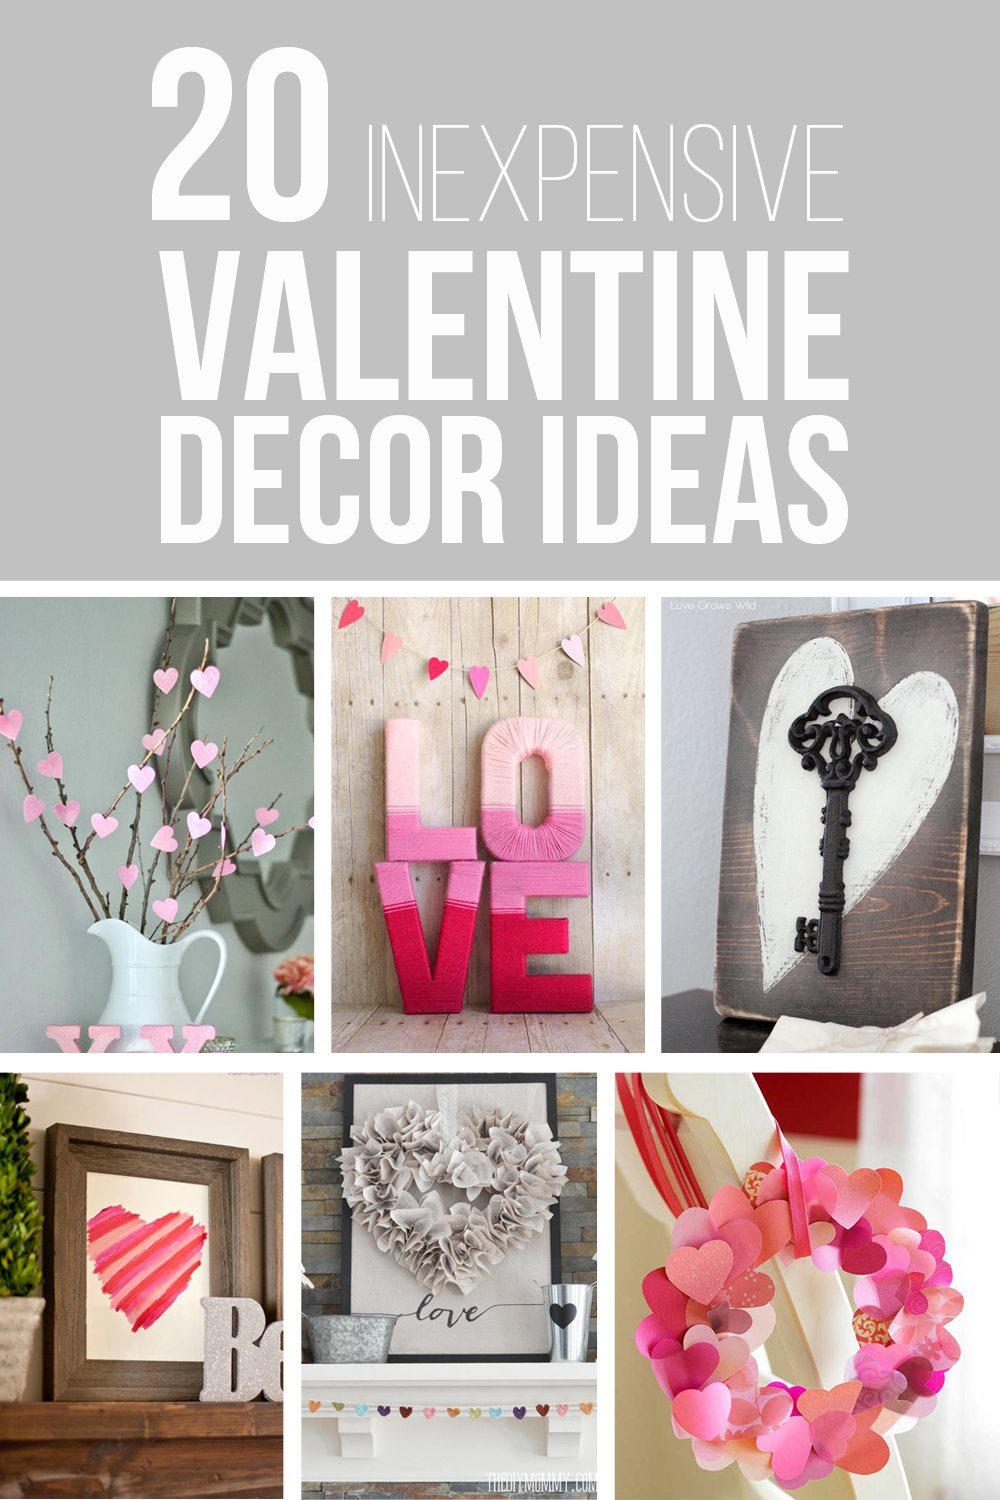 20 Inexpensive Valentine Decor Ideas – Make It and Love It